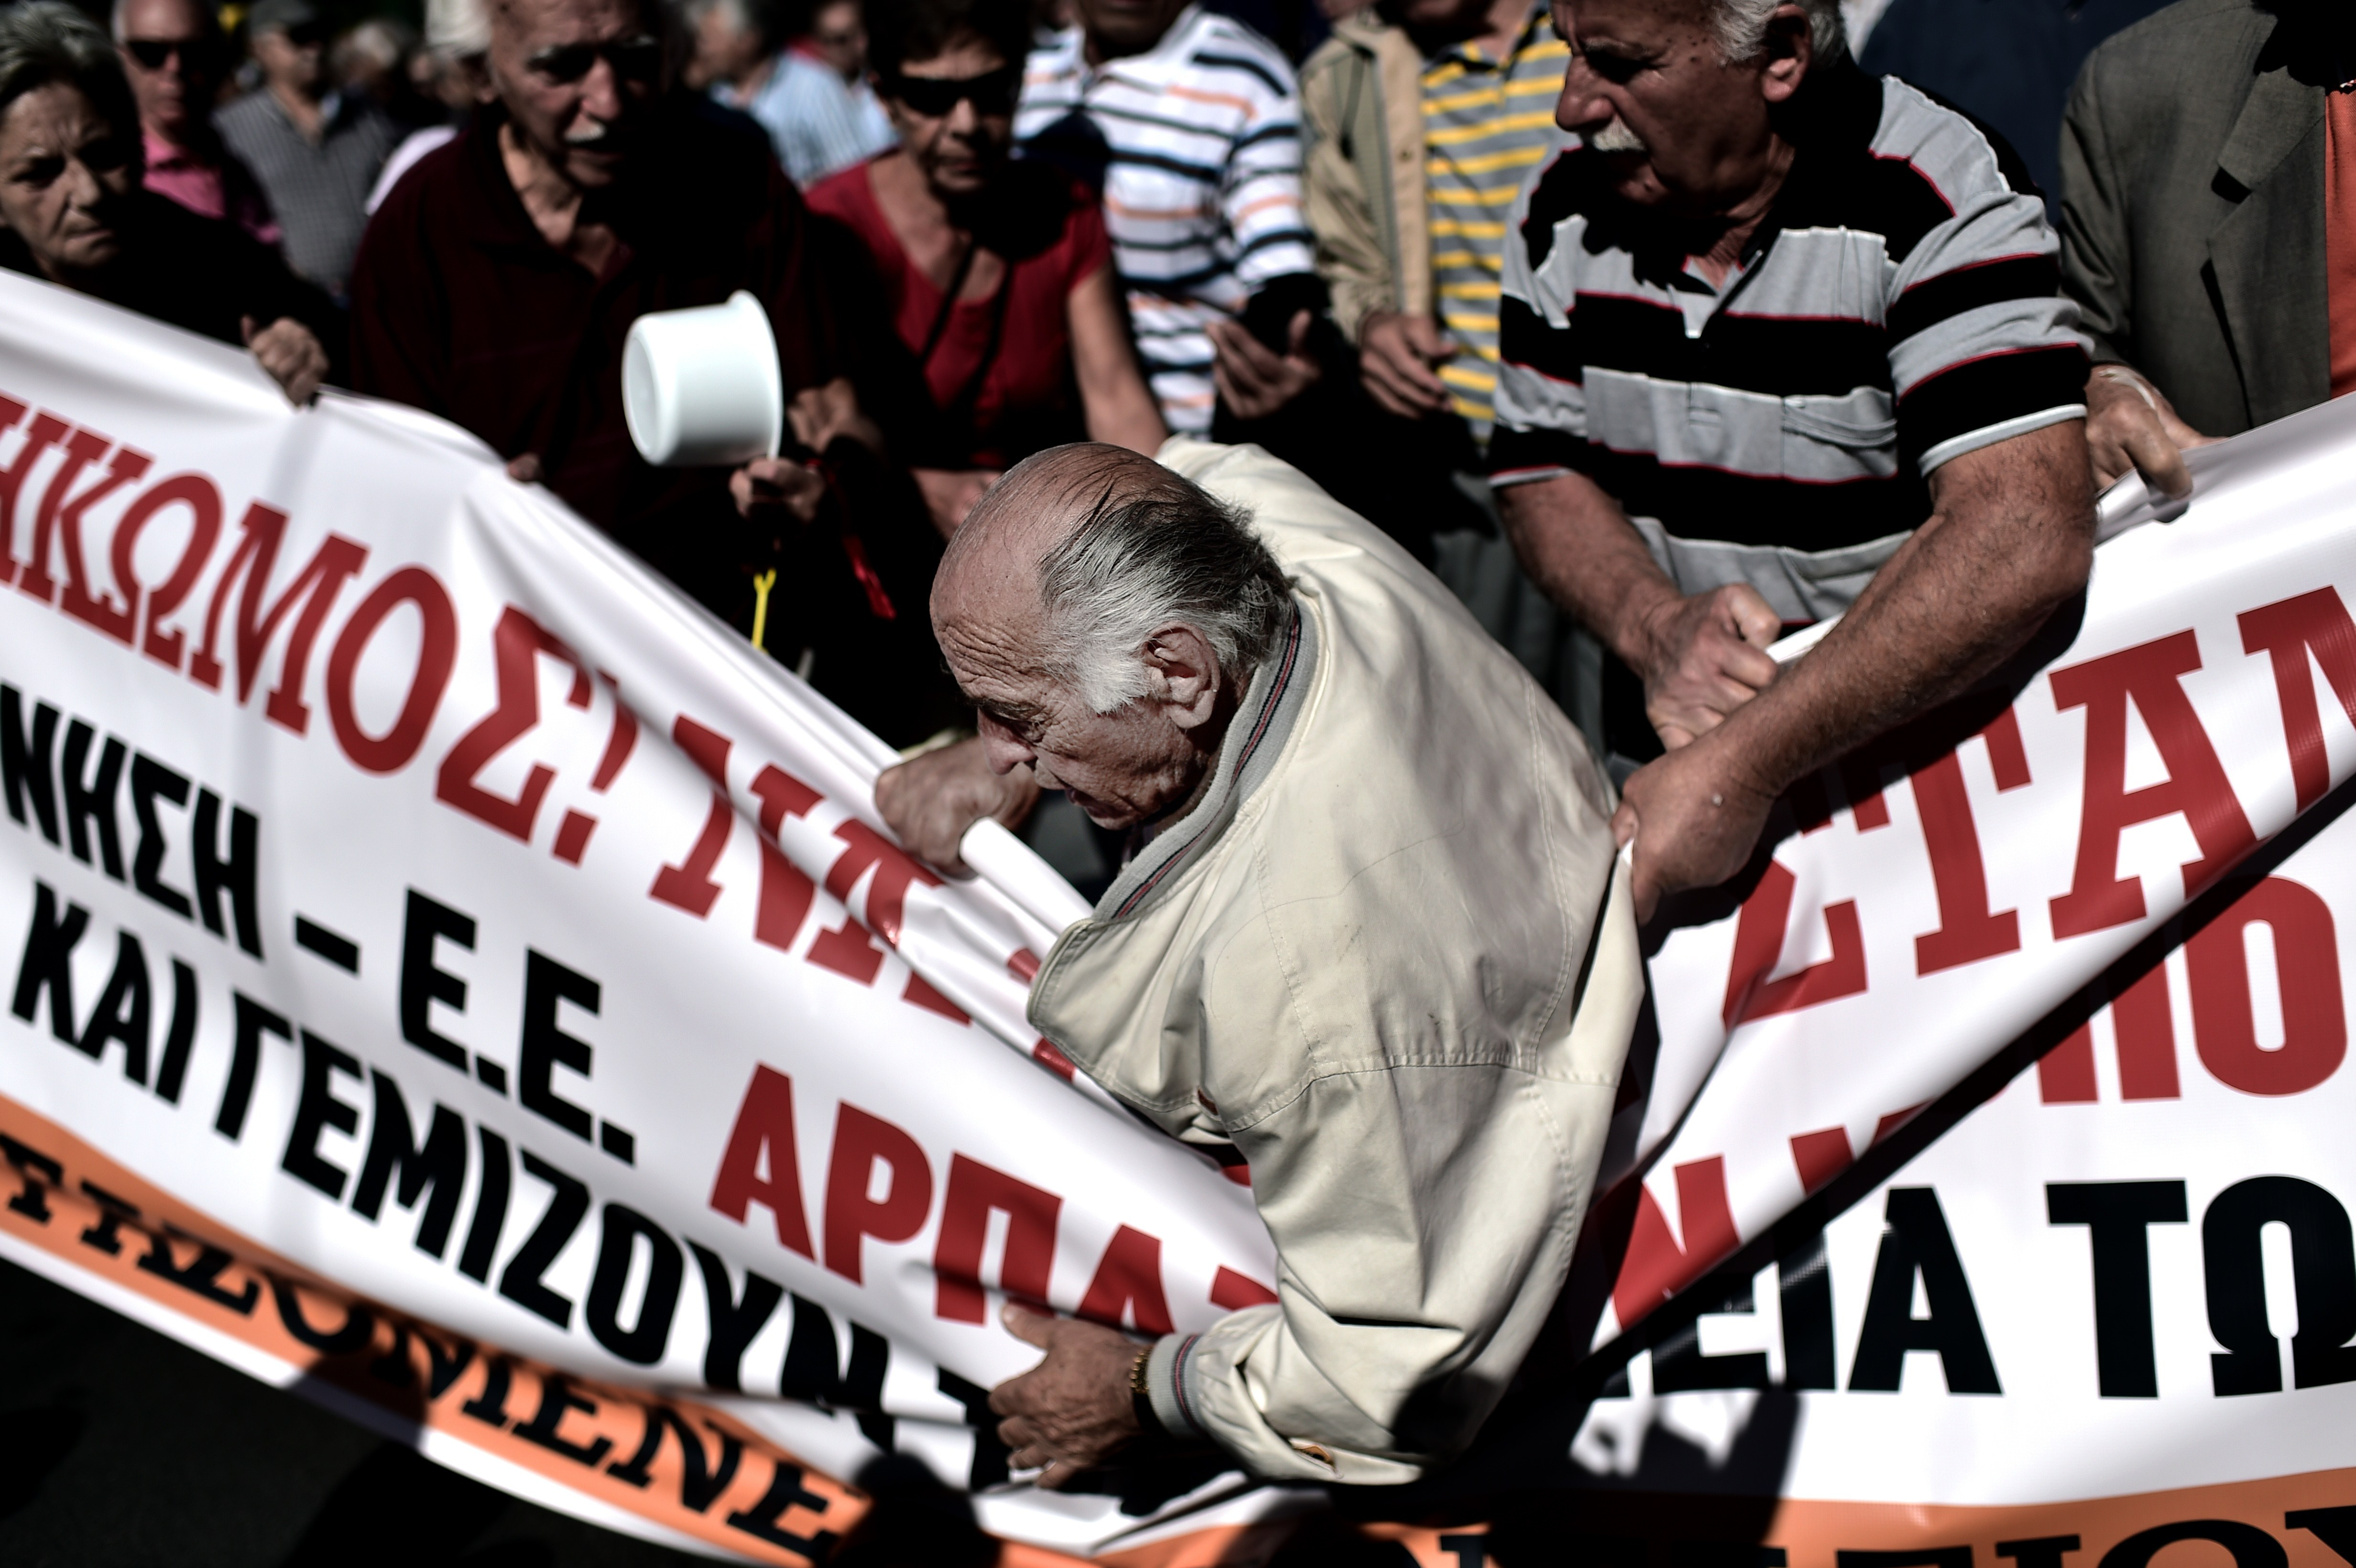 GREECE-EU-FINANCE-ECONOMY-DEMO